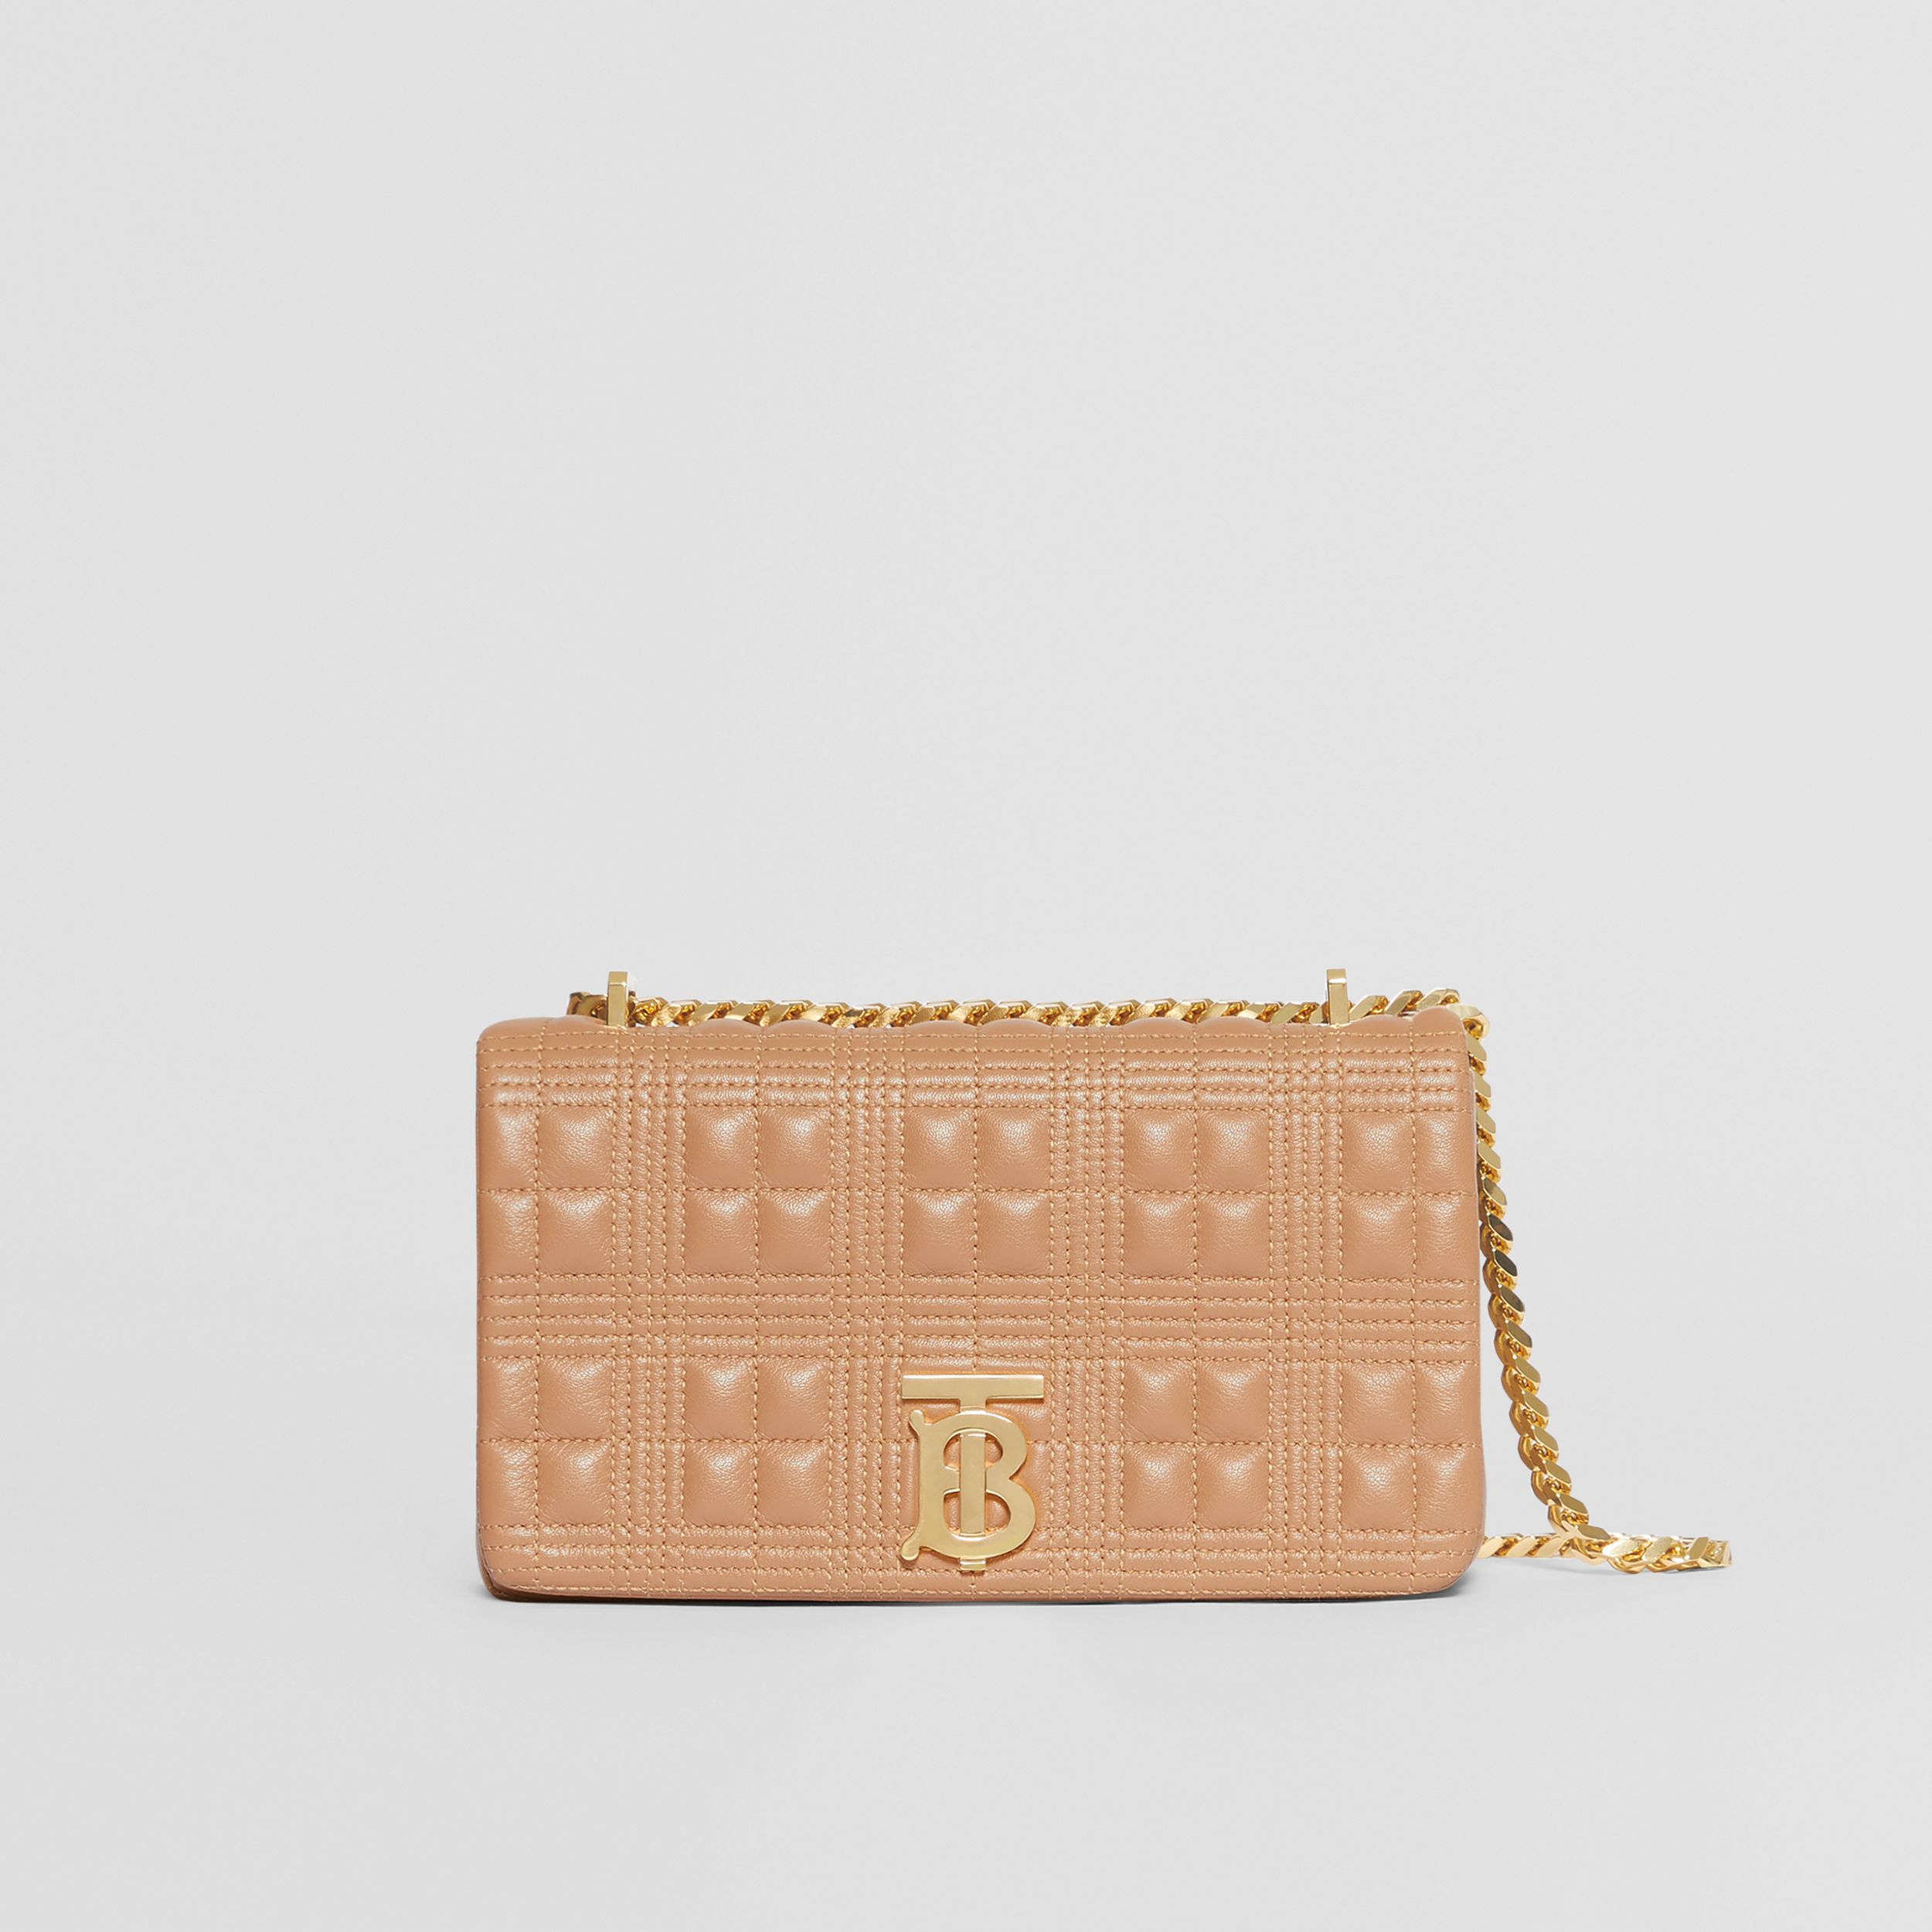 Small Quilted Lambskin Lola Bag in Camel/light Gold | Burberry - 1